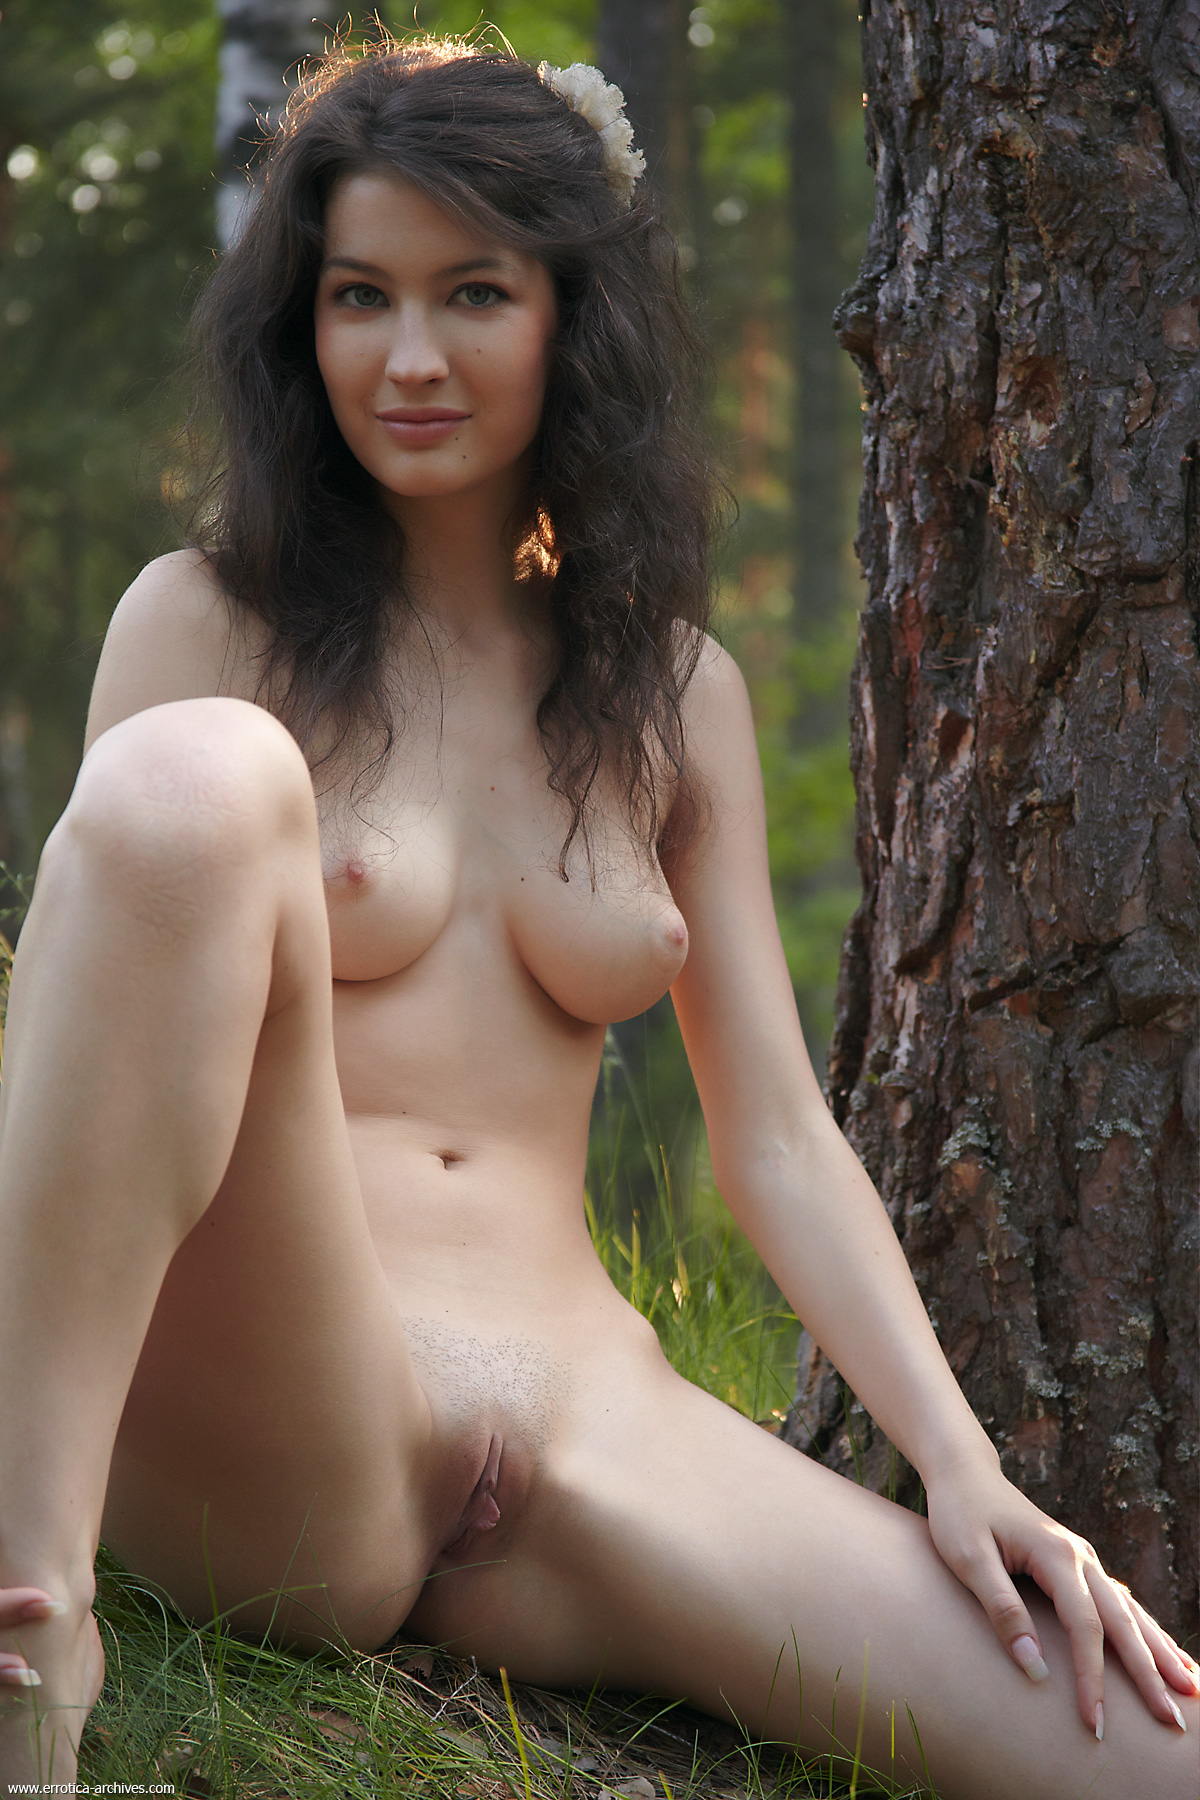 Very Index nudist picture apologise, but